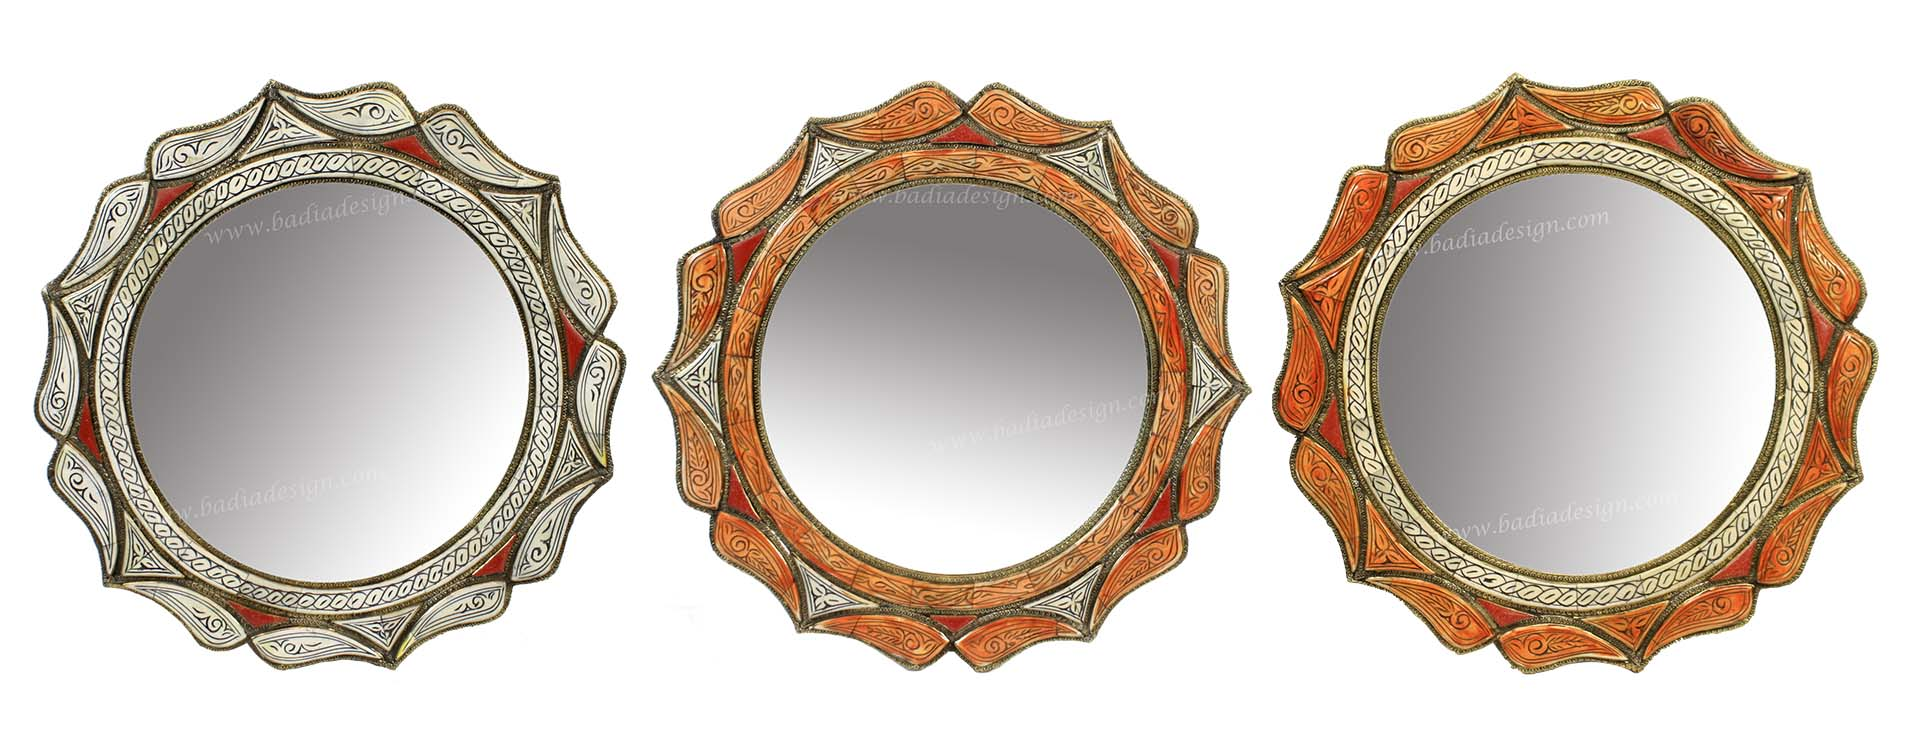 Round Moroccan Metal and Bone Mirror